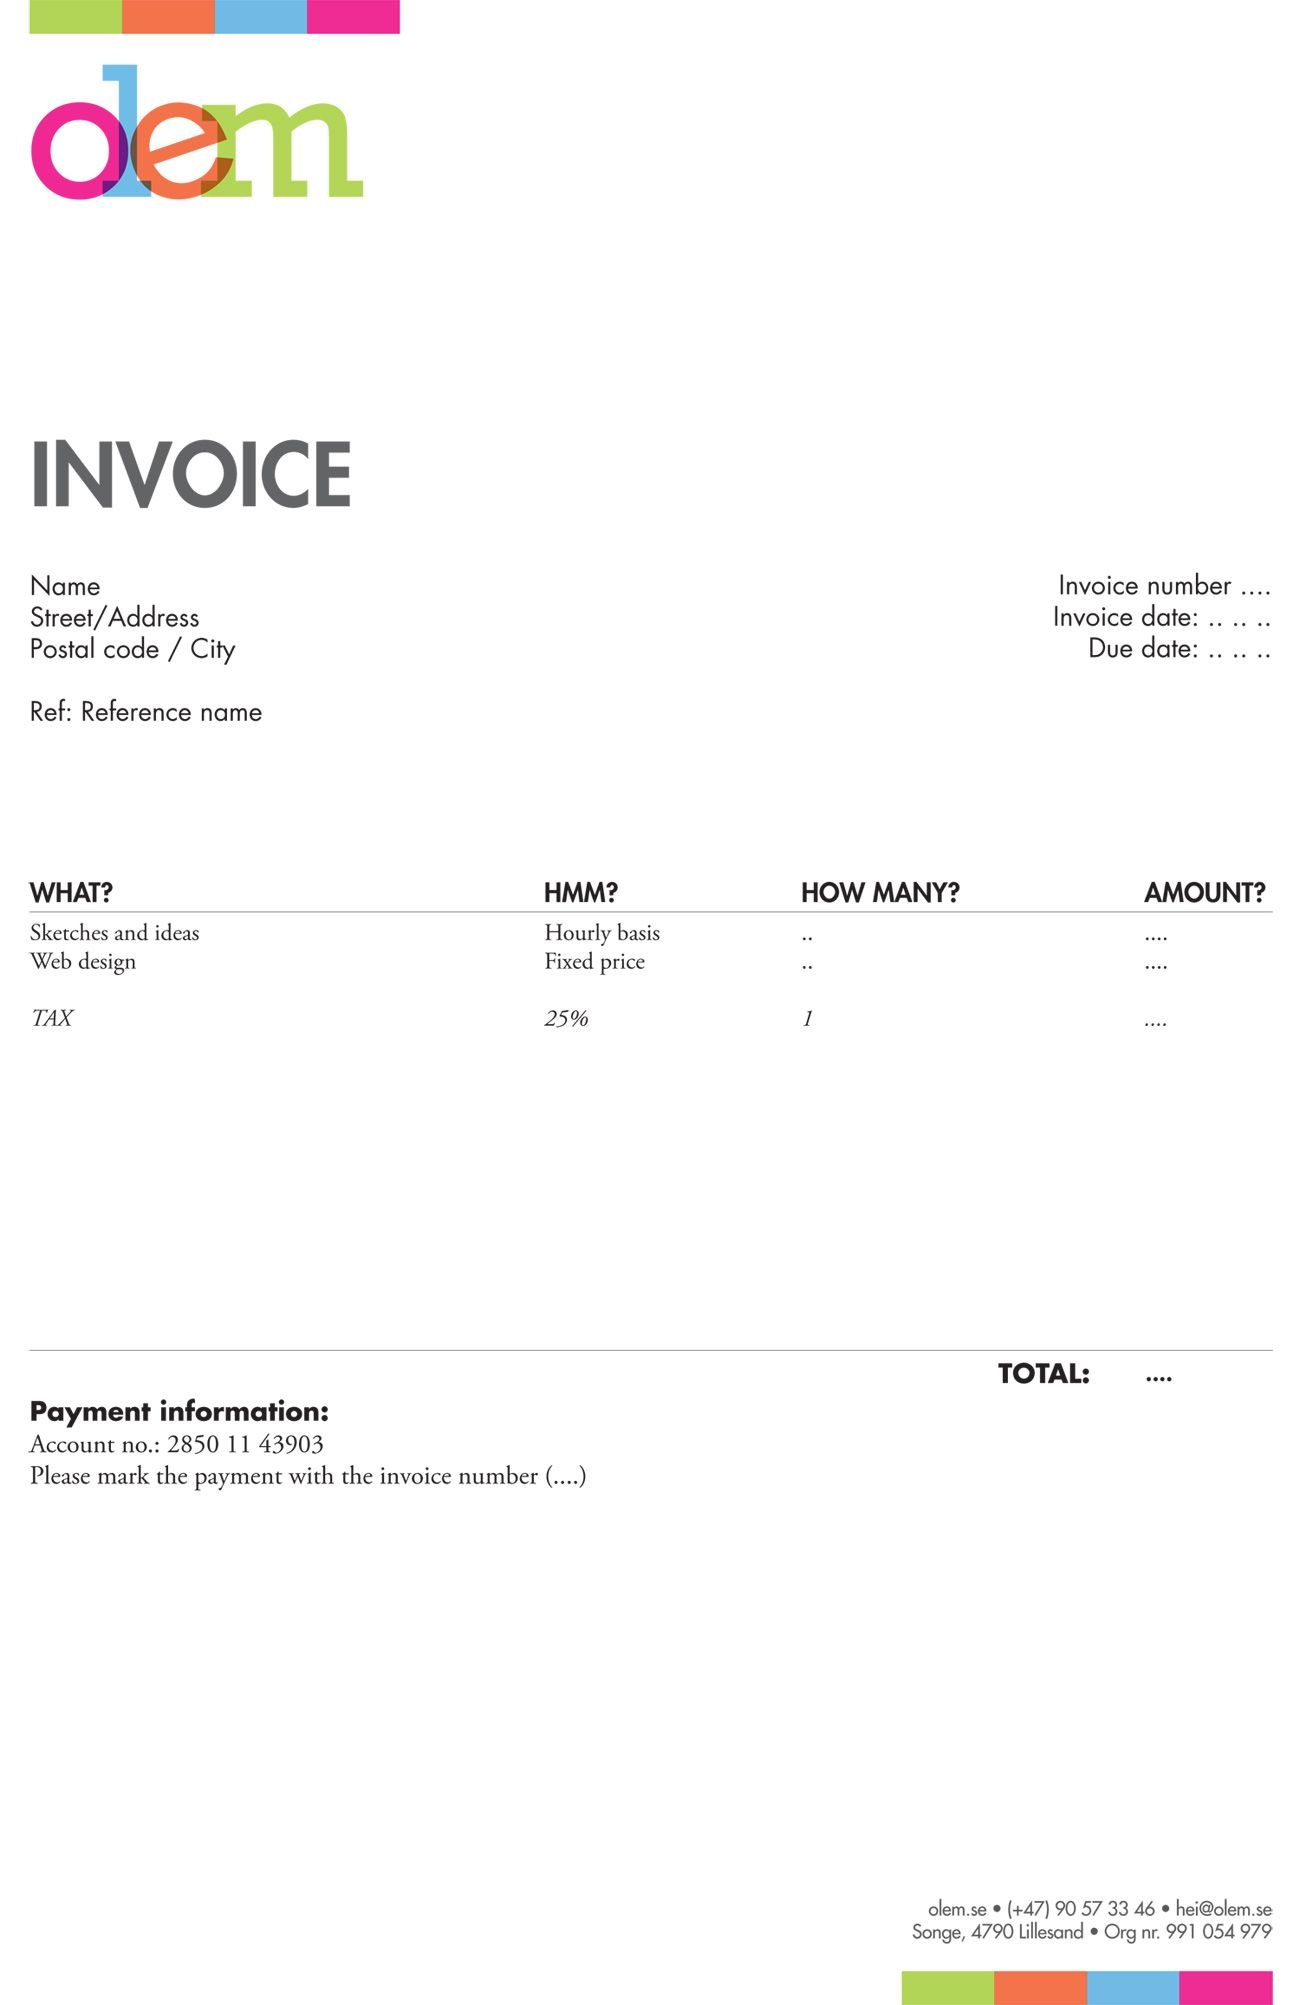 Invoice Like A Pro Design Examples And Best Practices  Biz Cards Inside Invoice Template For Designers